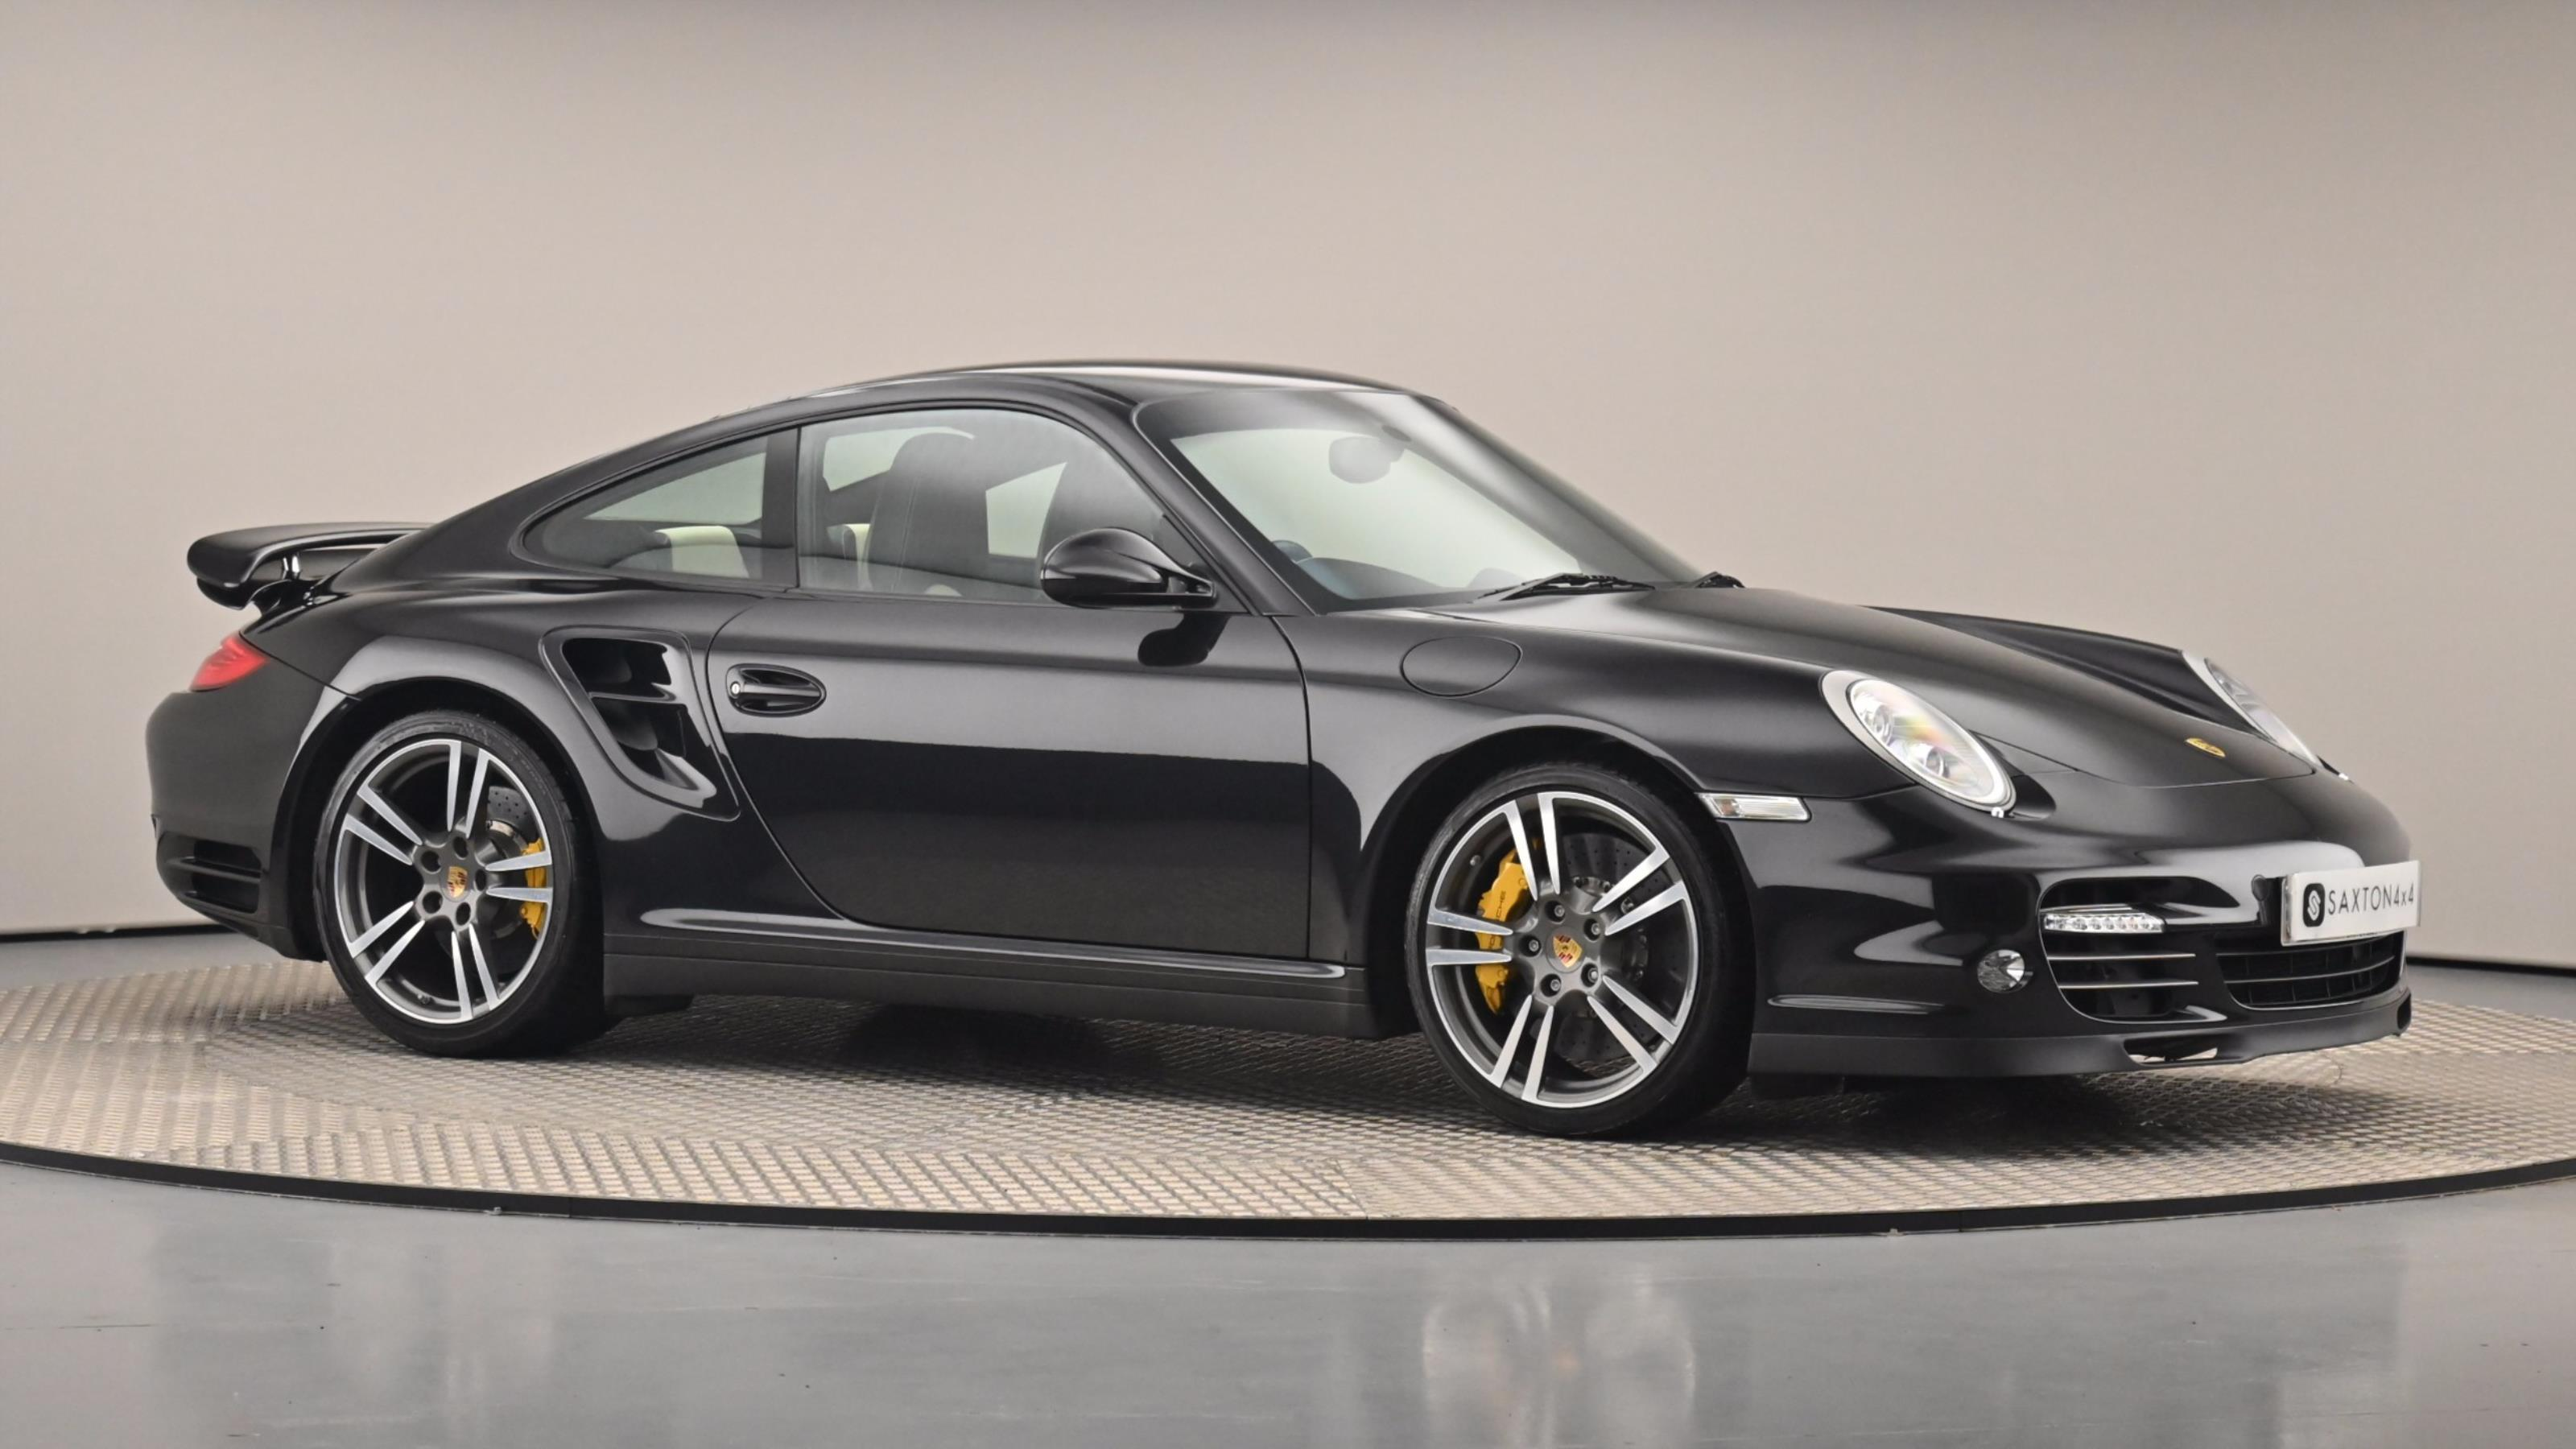 Used 2011 Porsche 911 S 2dr PDK BLACK at Saxton4x4